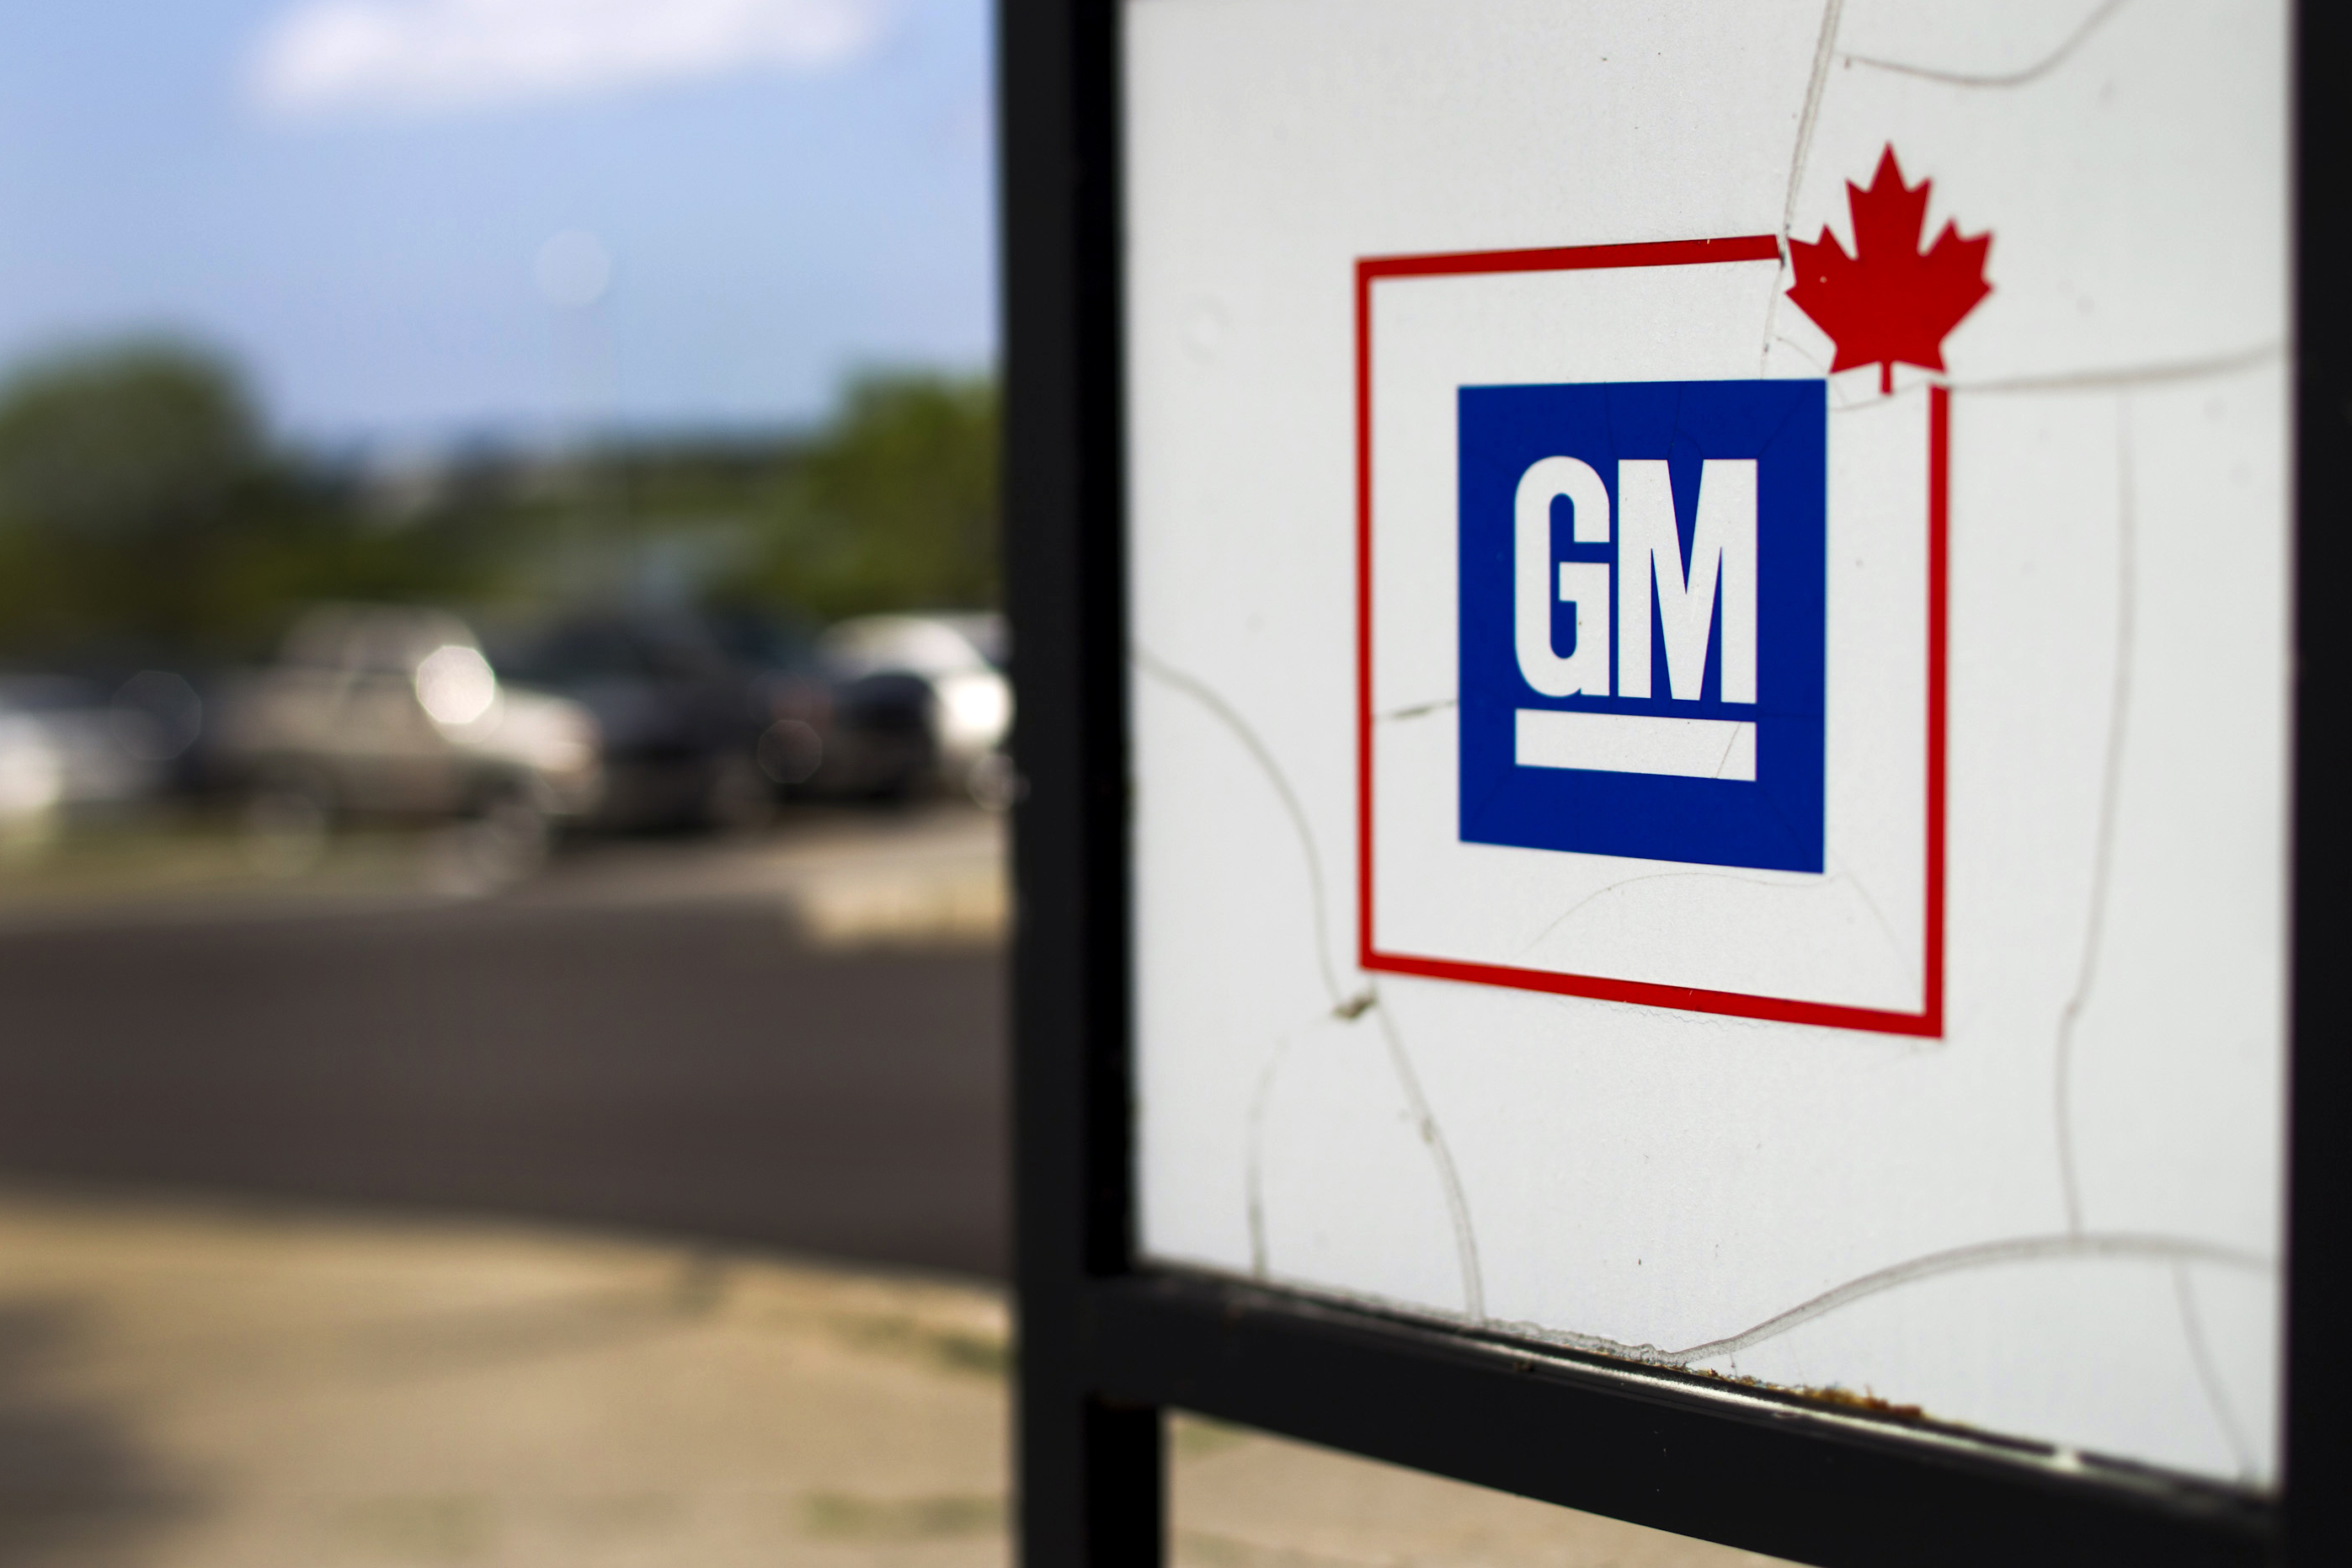 General Motors Co. (GM) signage is displayed outside of General Motor of Canada Ltd. headquarter offices in Oshawa, Ontario, Canada, on Monday, Aug. 8, 2011. General Motors of Canada Ltd. will pump $2.535-billion into a trust fund that will finance health-care costs for its retirees, eliminating a key legacy cost that the auto maker said hobbled it in the fiercely competitive North American auto market, according to The Globe and Mail. Photographer: Brent Lewin/Bloomberg via Getty Images